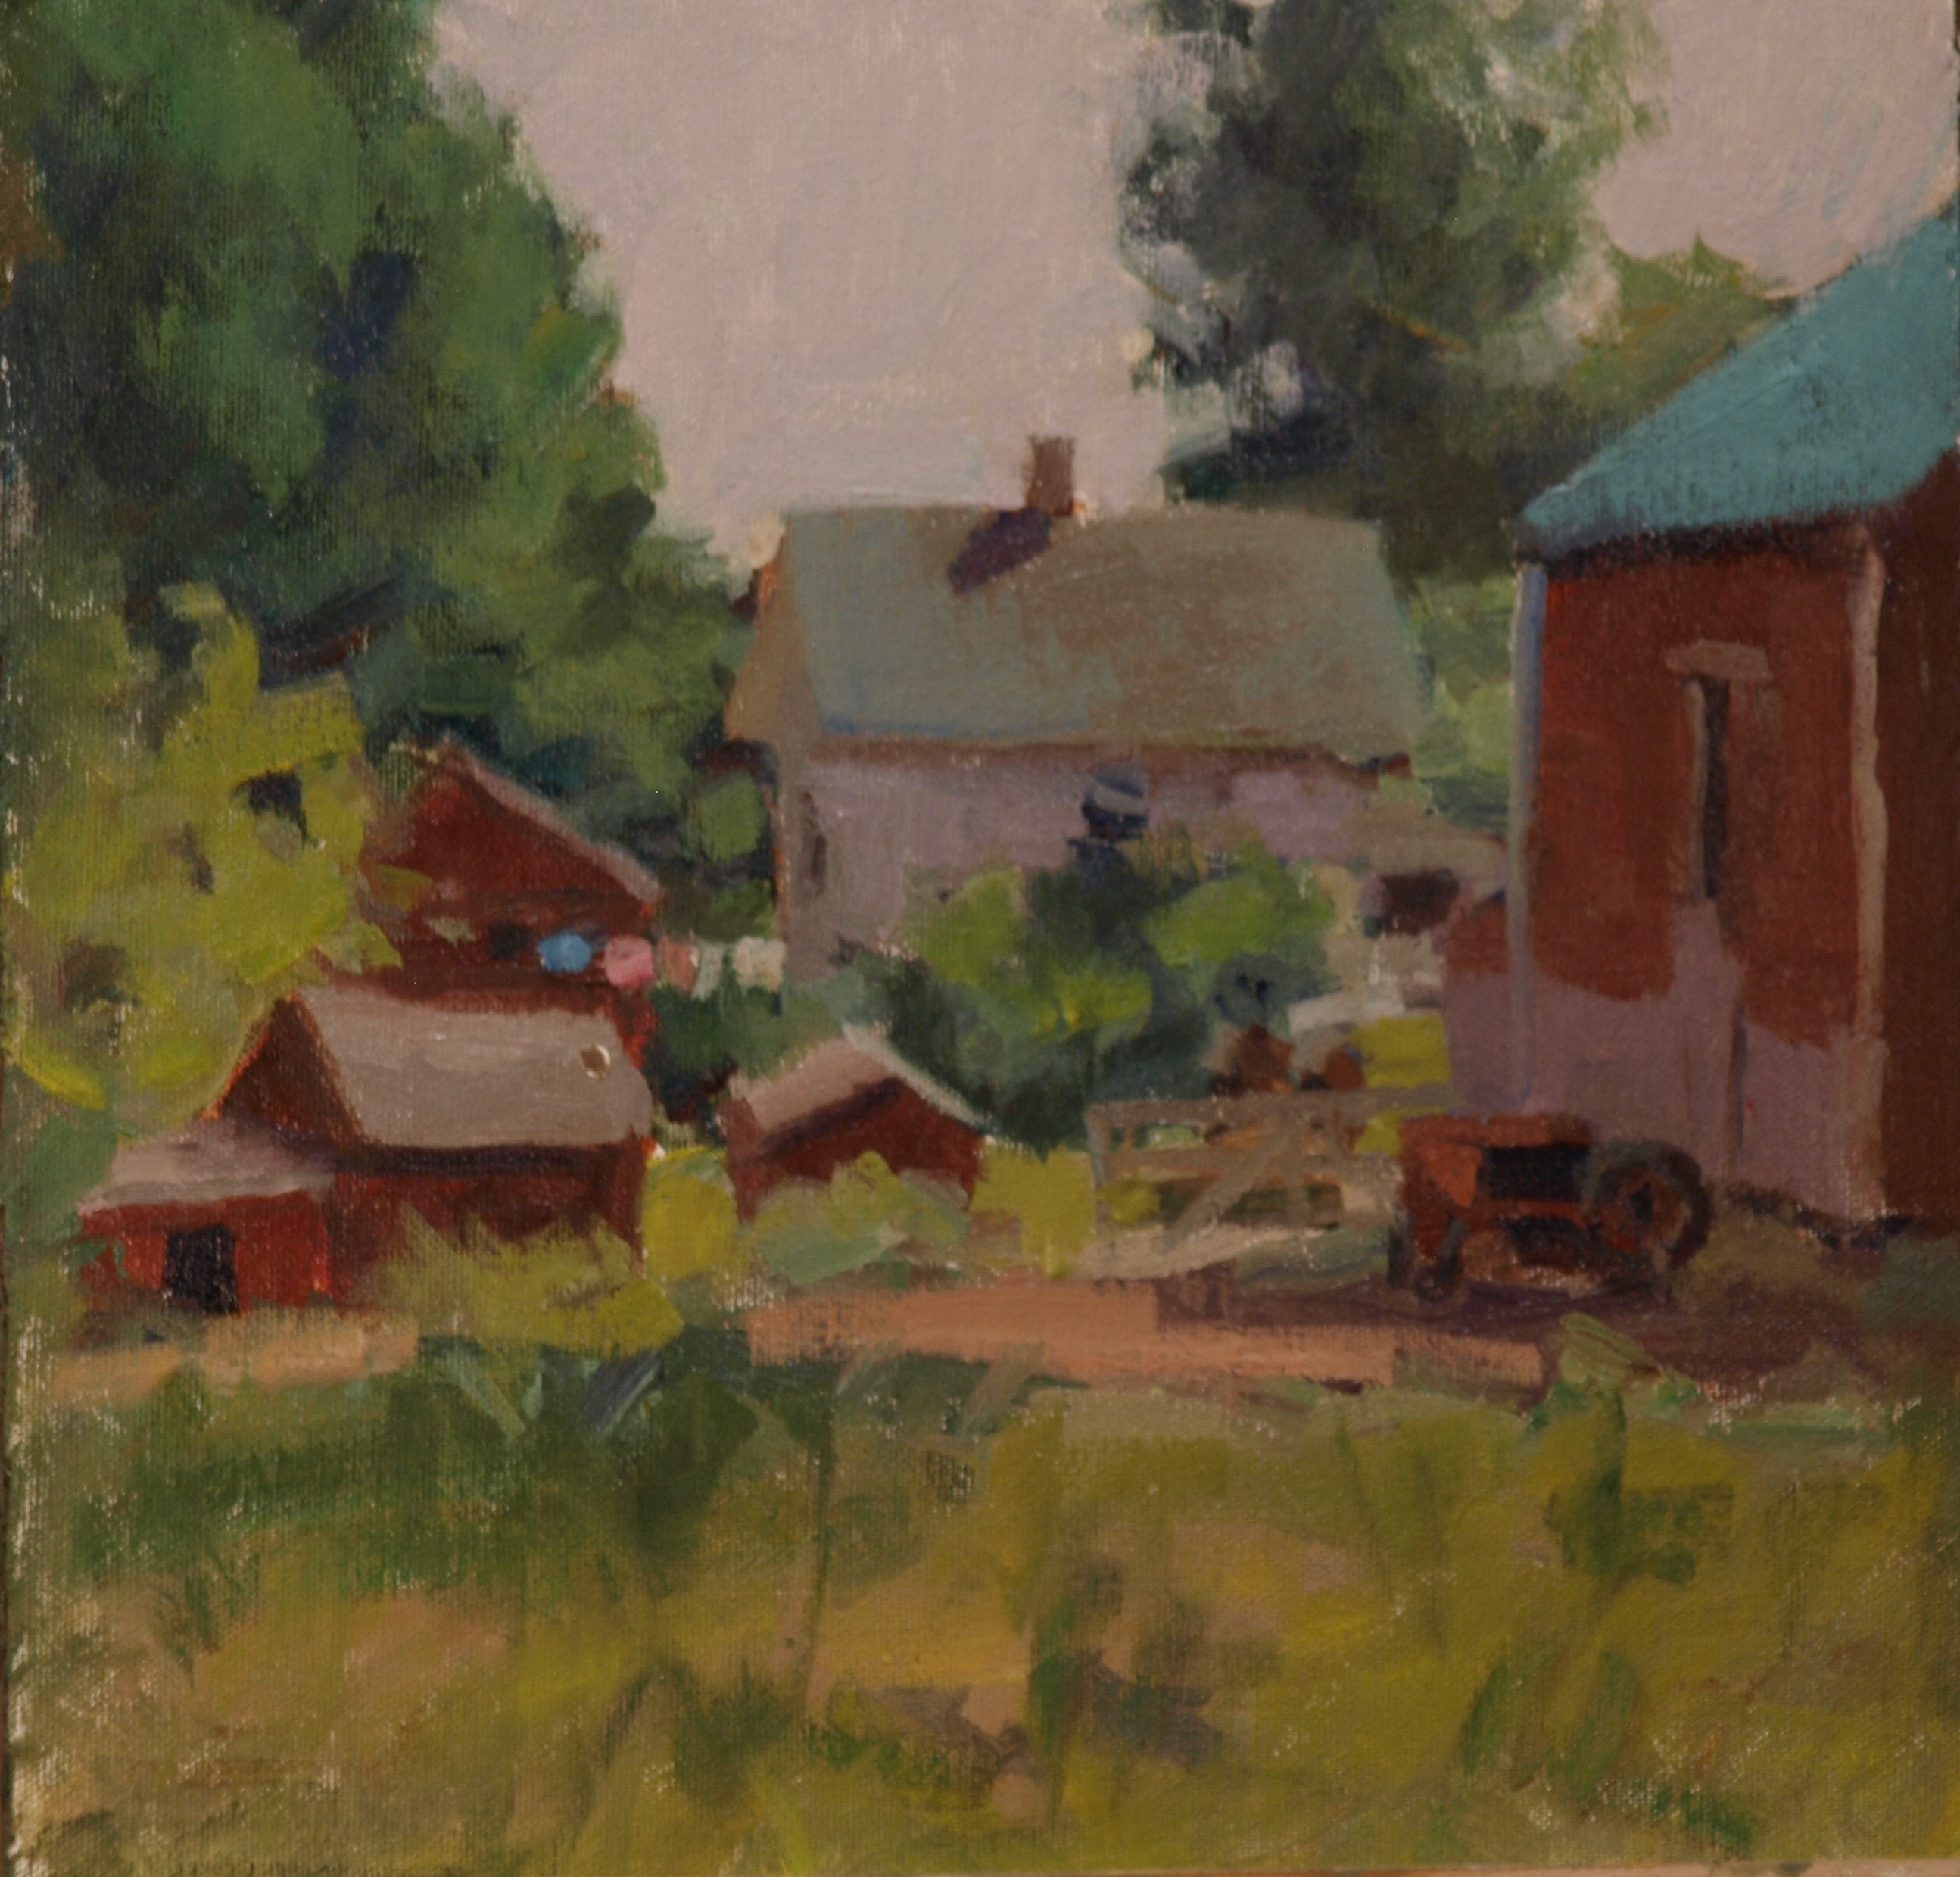 Monday, Oil on Canvas on Panel, 12 x 12 Inches, by Susan Grisell, $300